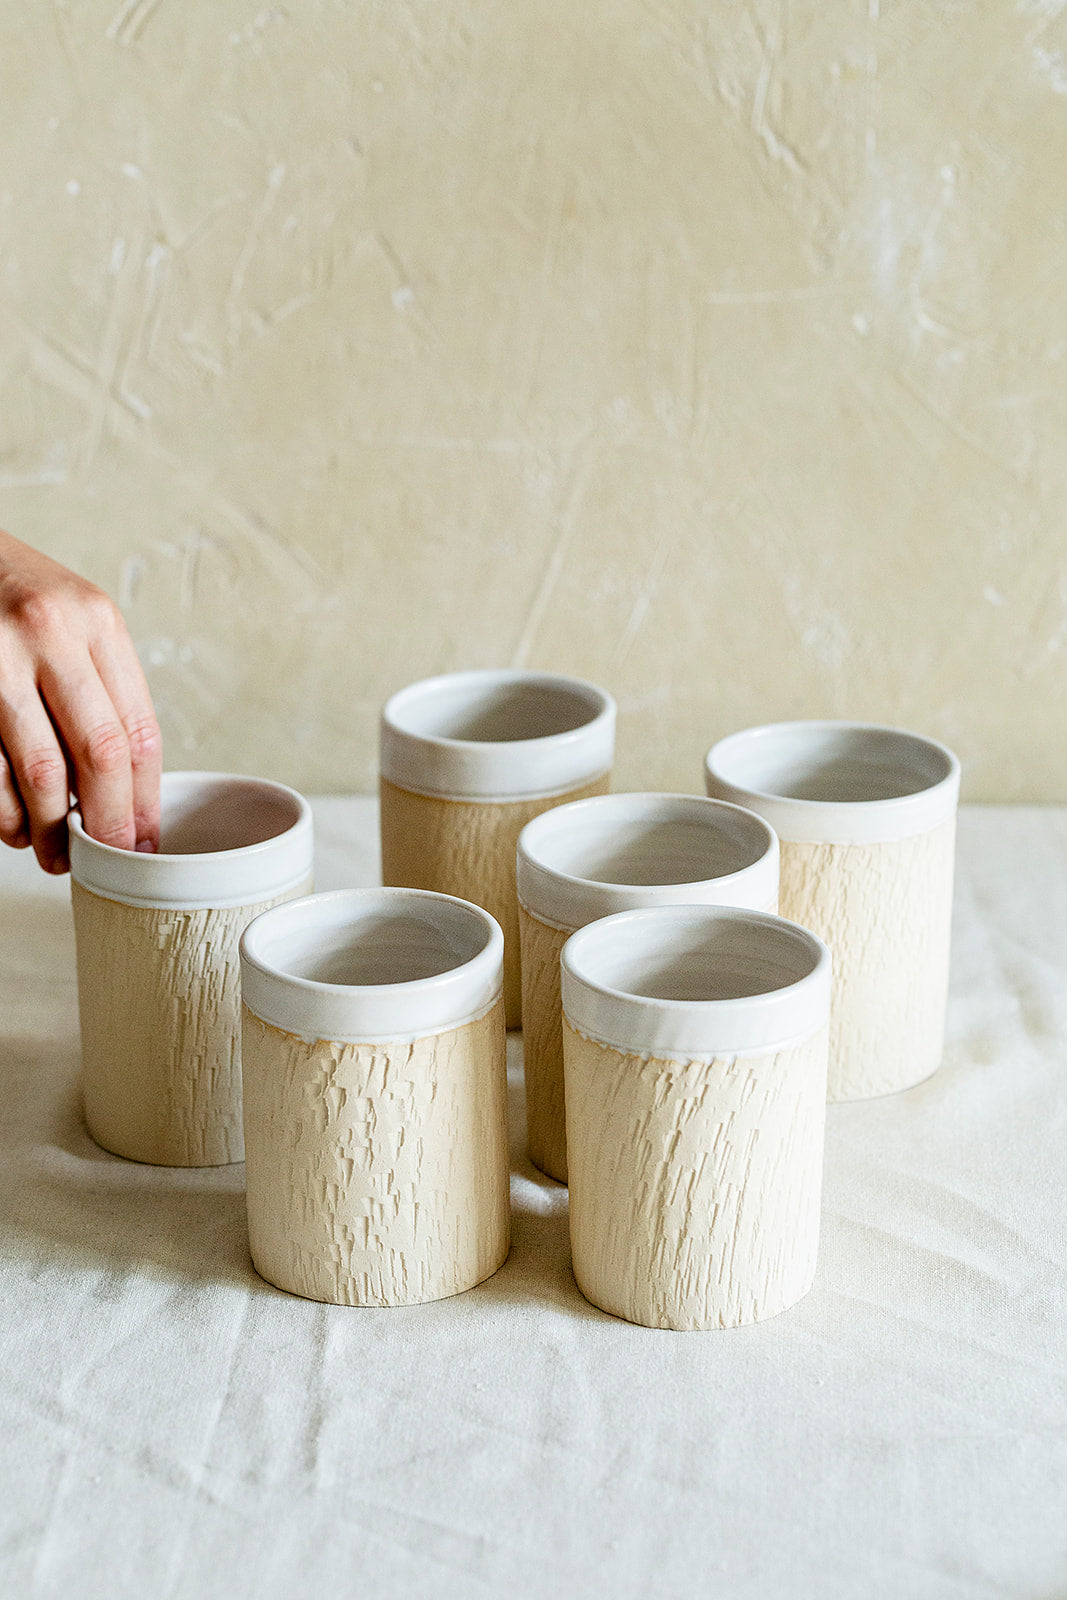 Set of 6 espresso cup